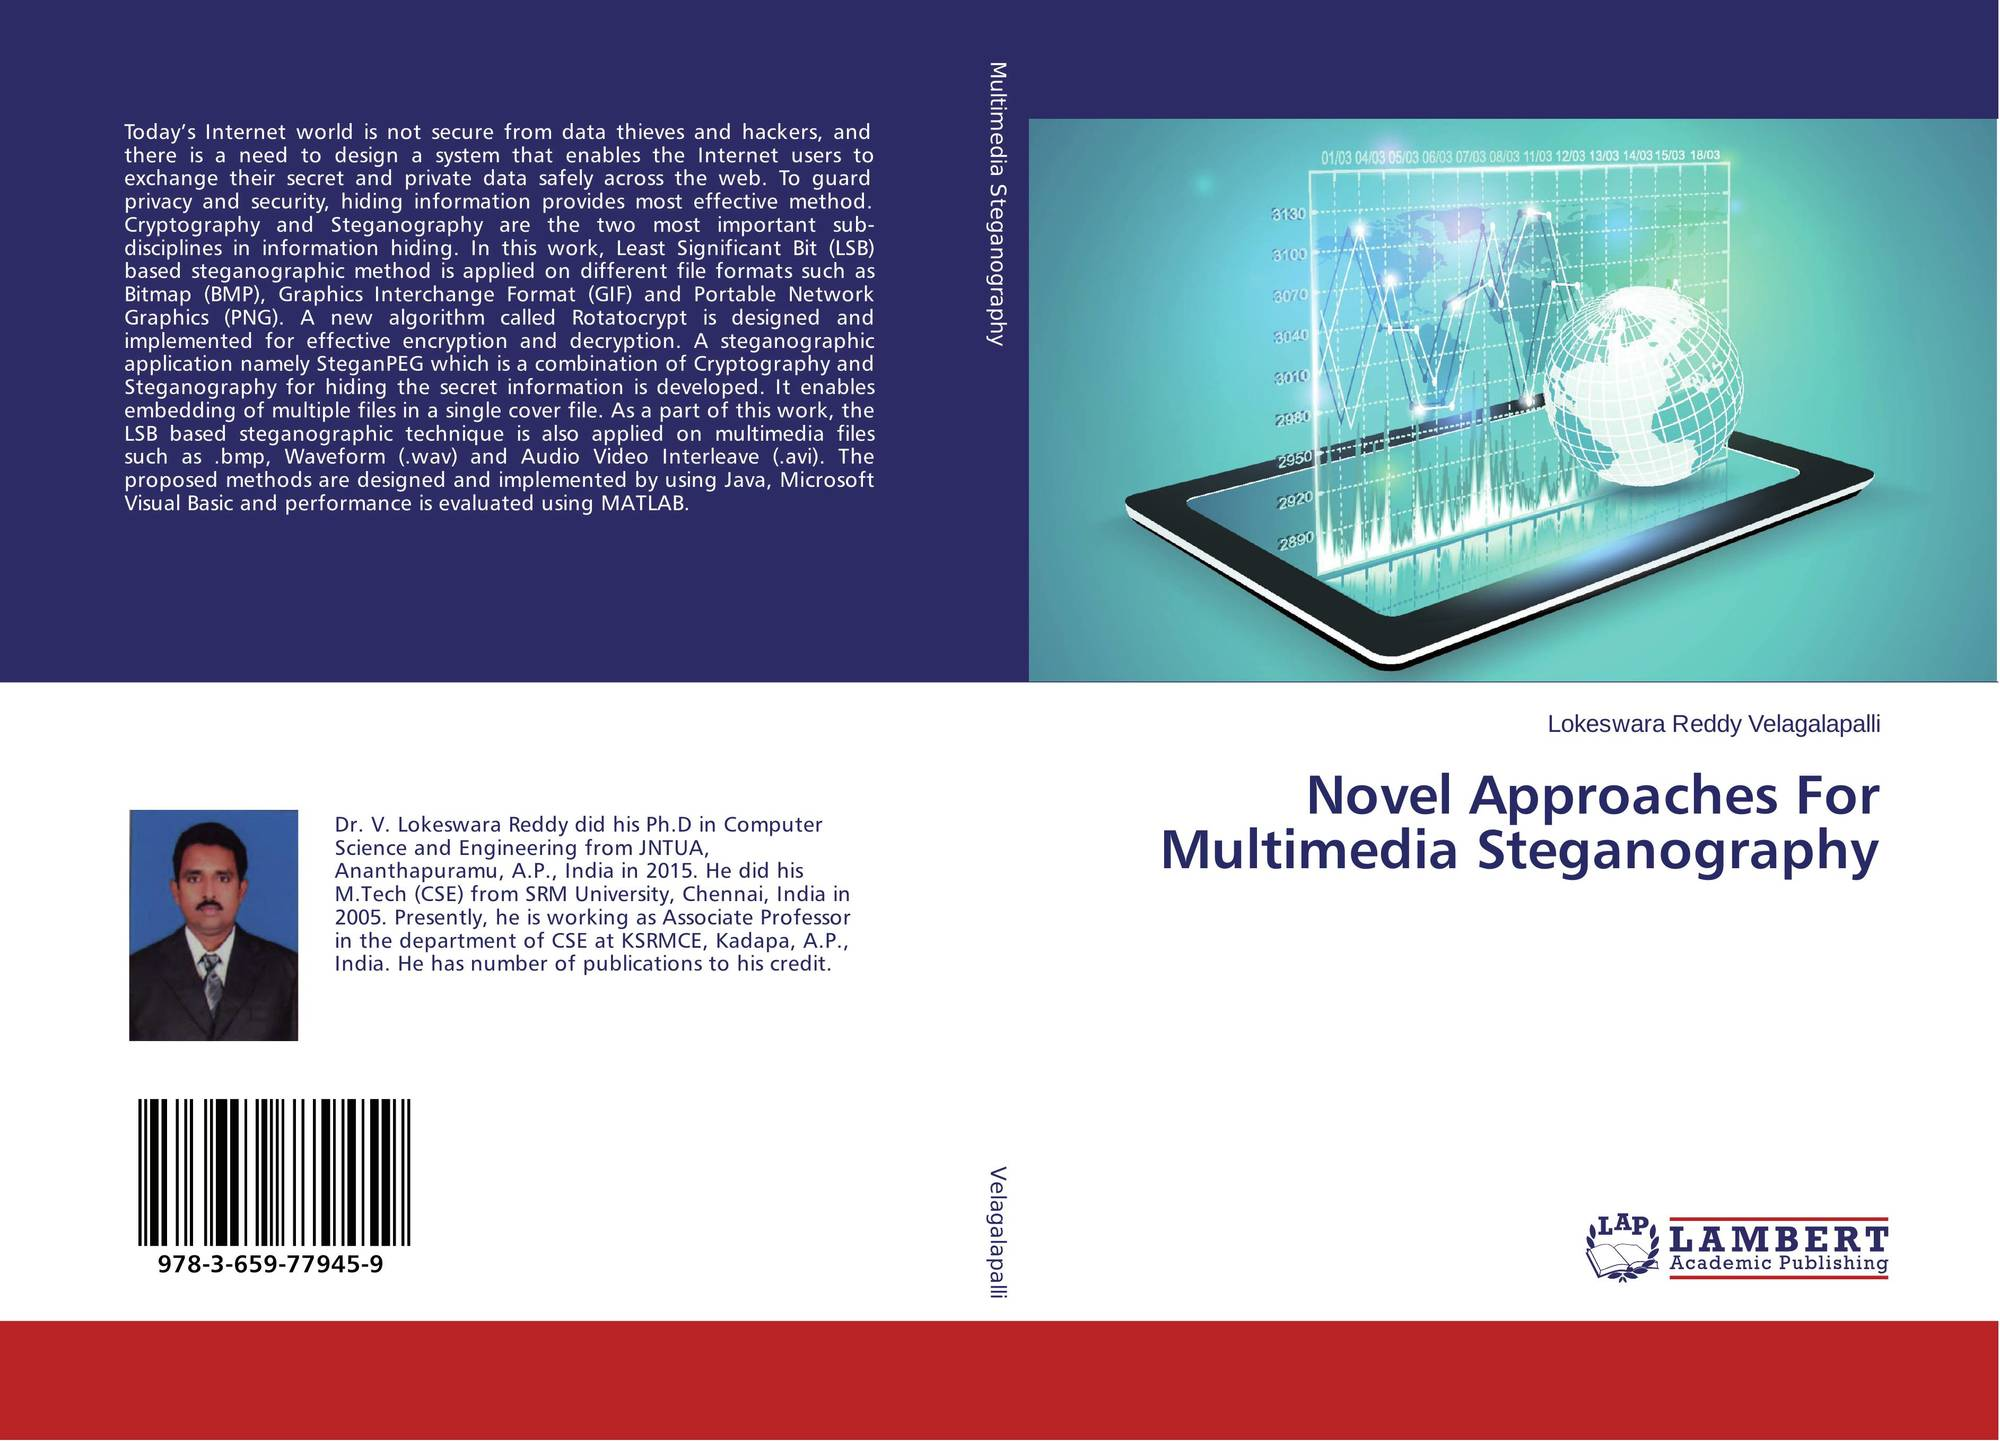 literature survey on steganography Steganography has become increasingly popular in the past years, due to the explosion of the internet and multi-media use in general most of the attention has been drawn now because of the malicious use of the technique it has been used for terrorism, fraud, espionage, etc.